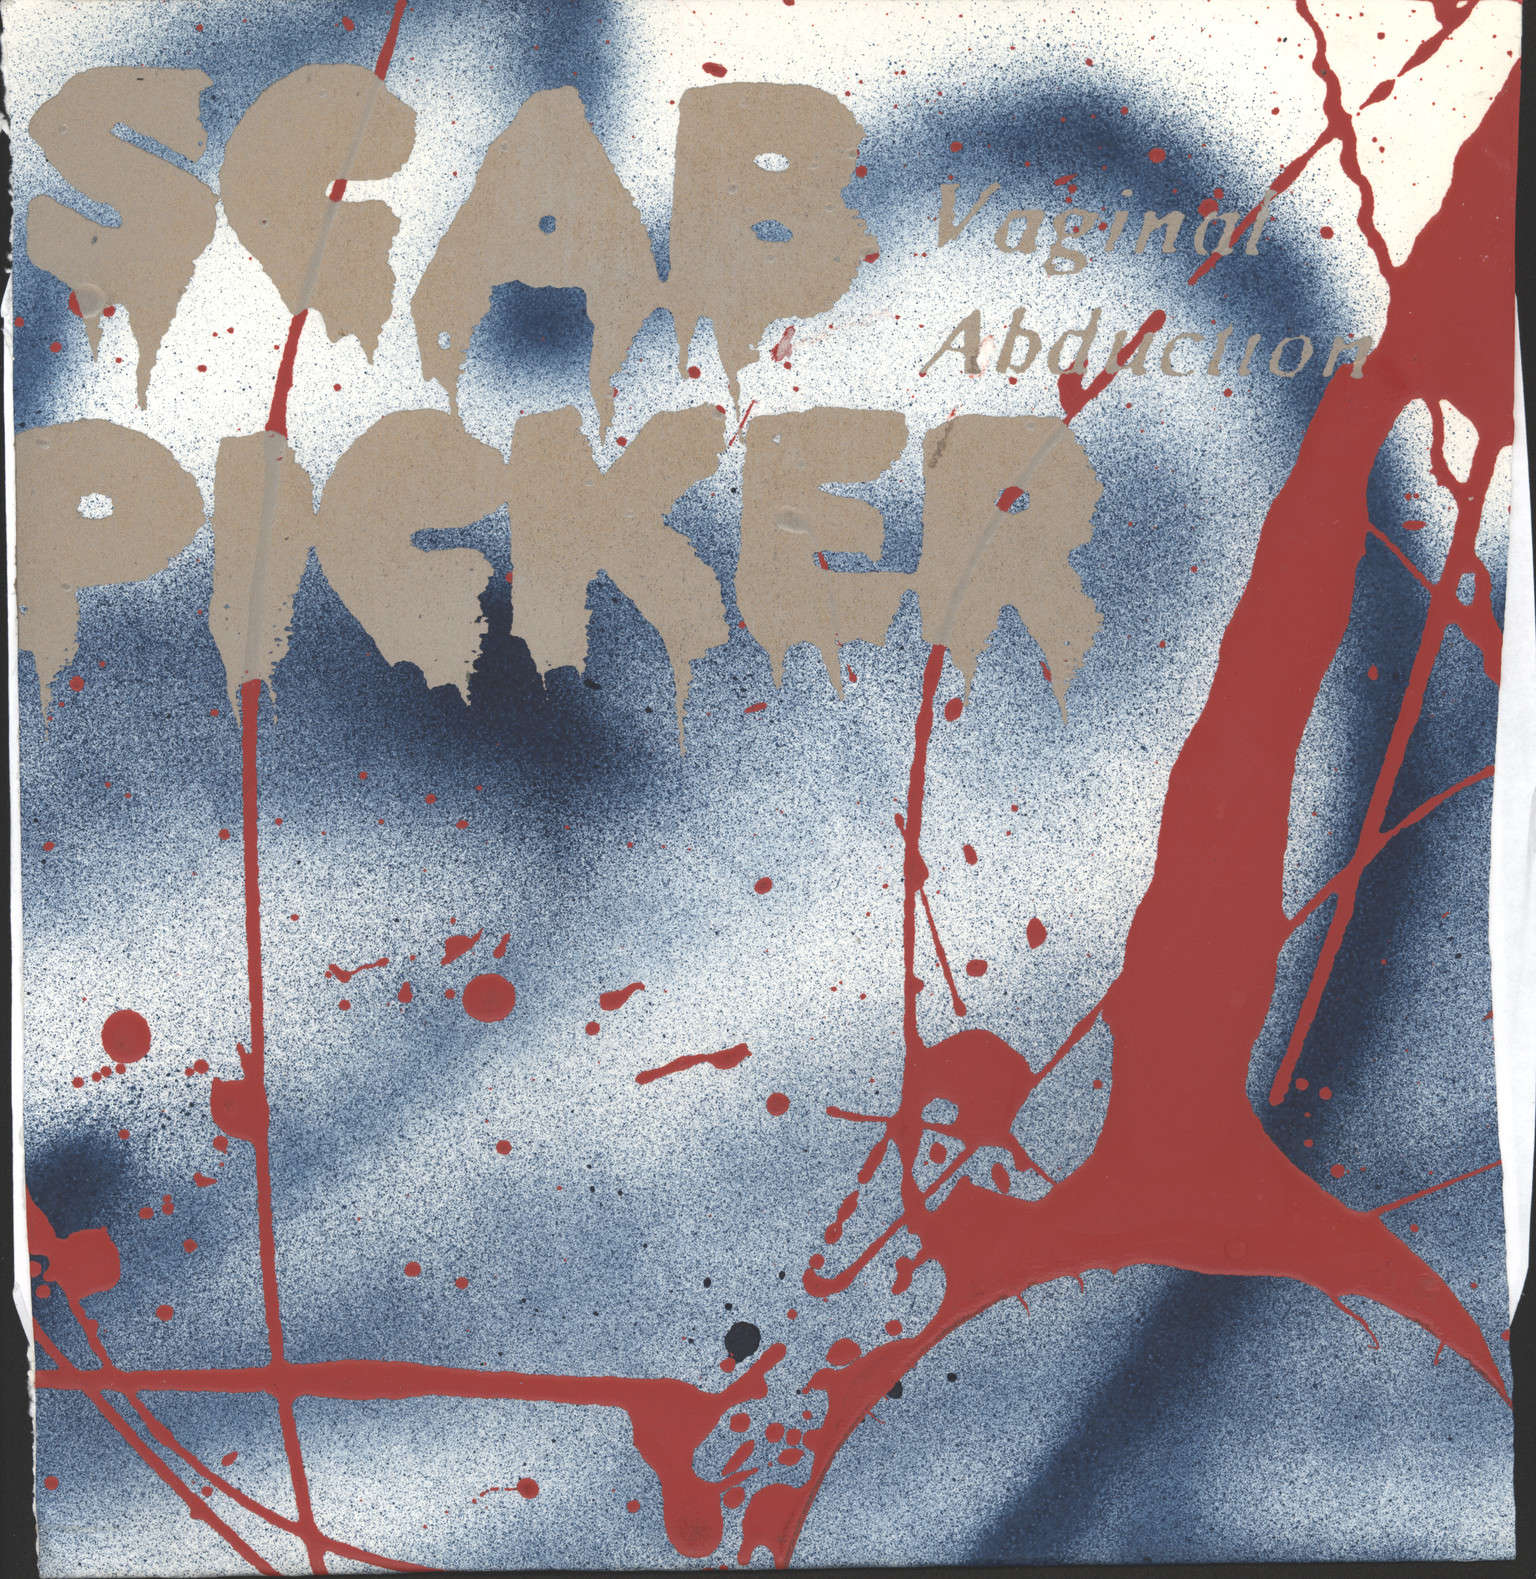 Scab Picker: Vaginal Abduction, LP (Vinyl)